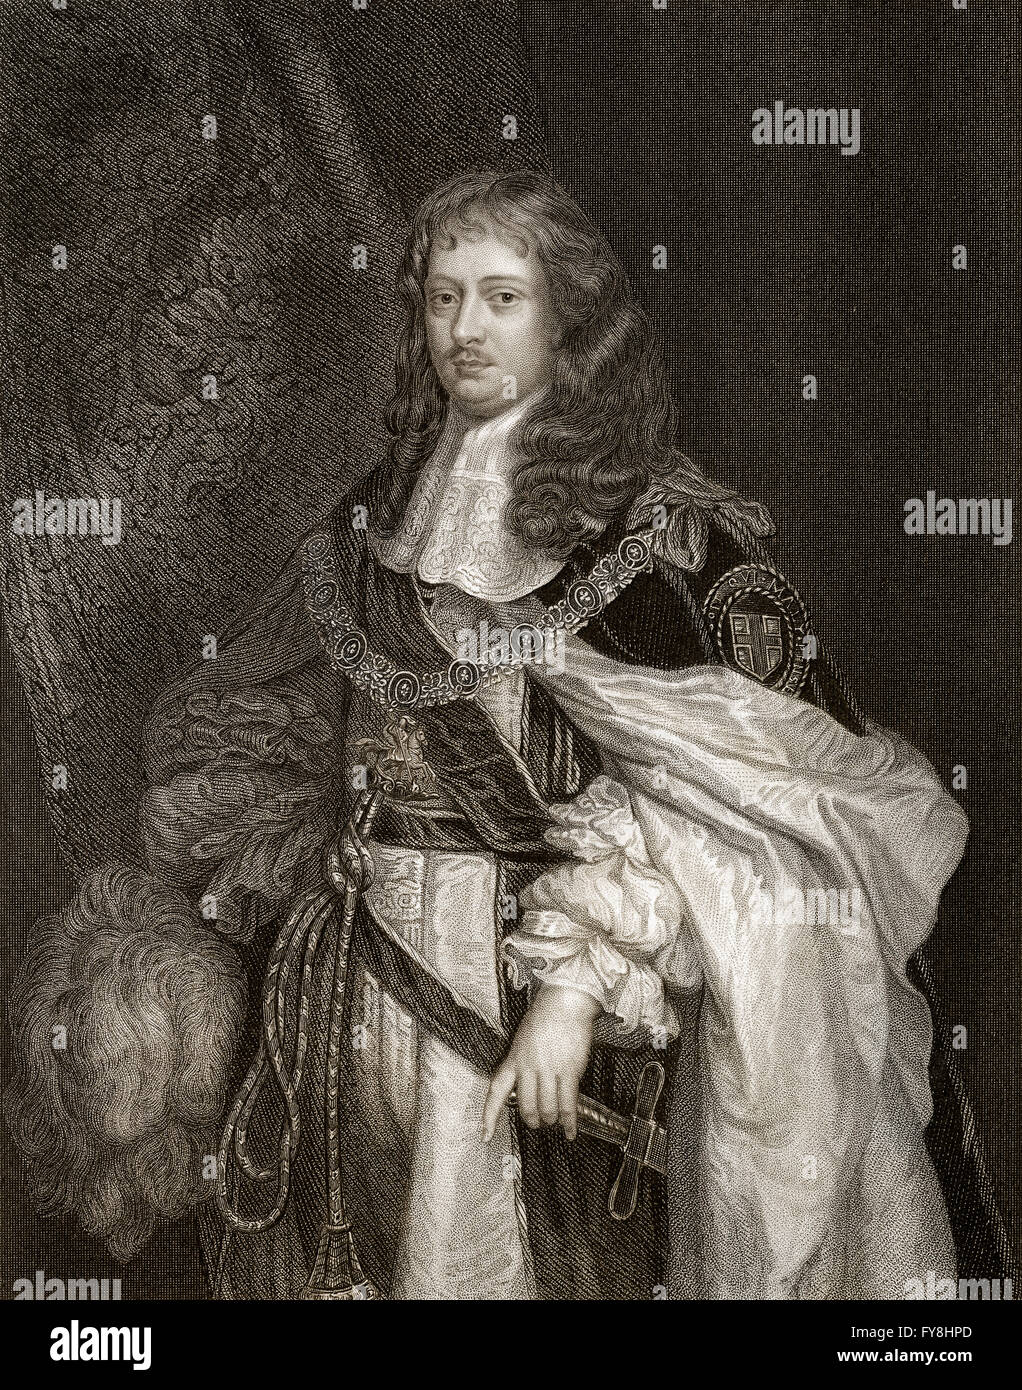 Edward Montagu, 1st Earl of Sandwich, 1625-1672, an English Infantry officer, naval officer and politician - Stock Image